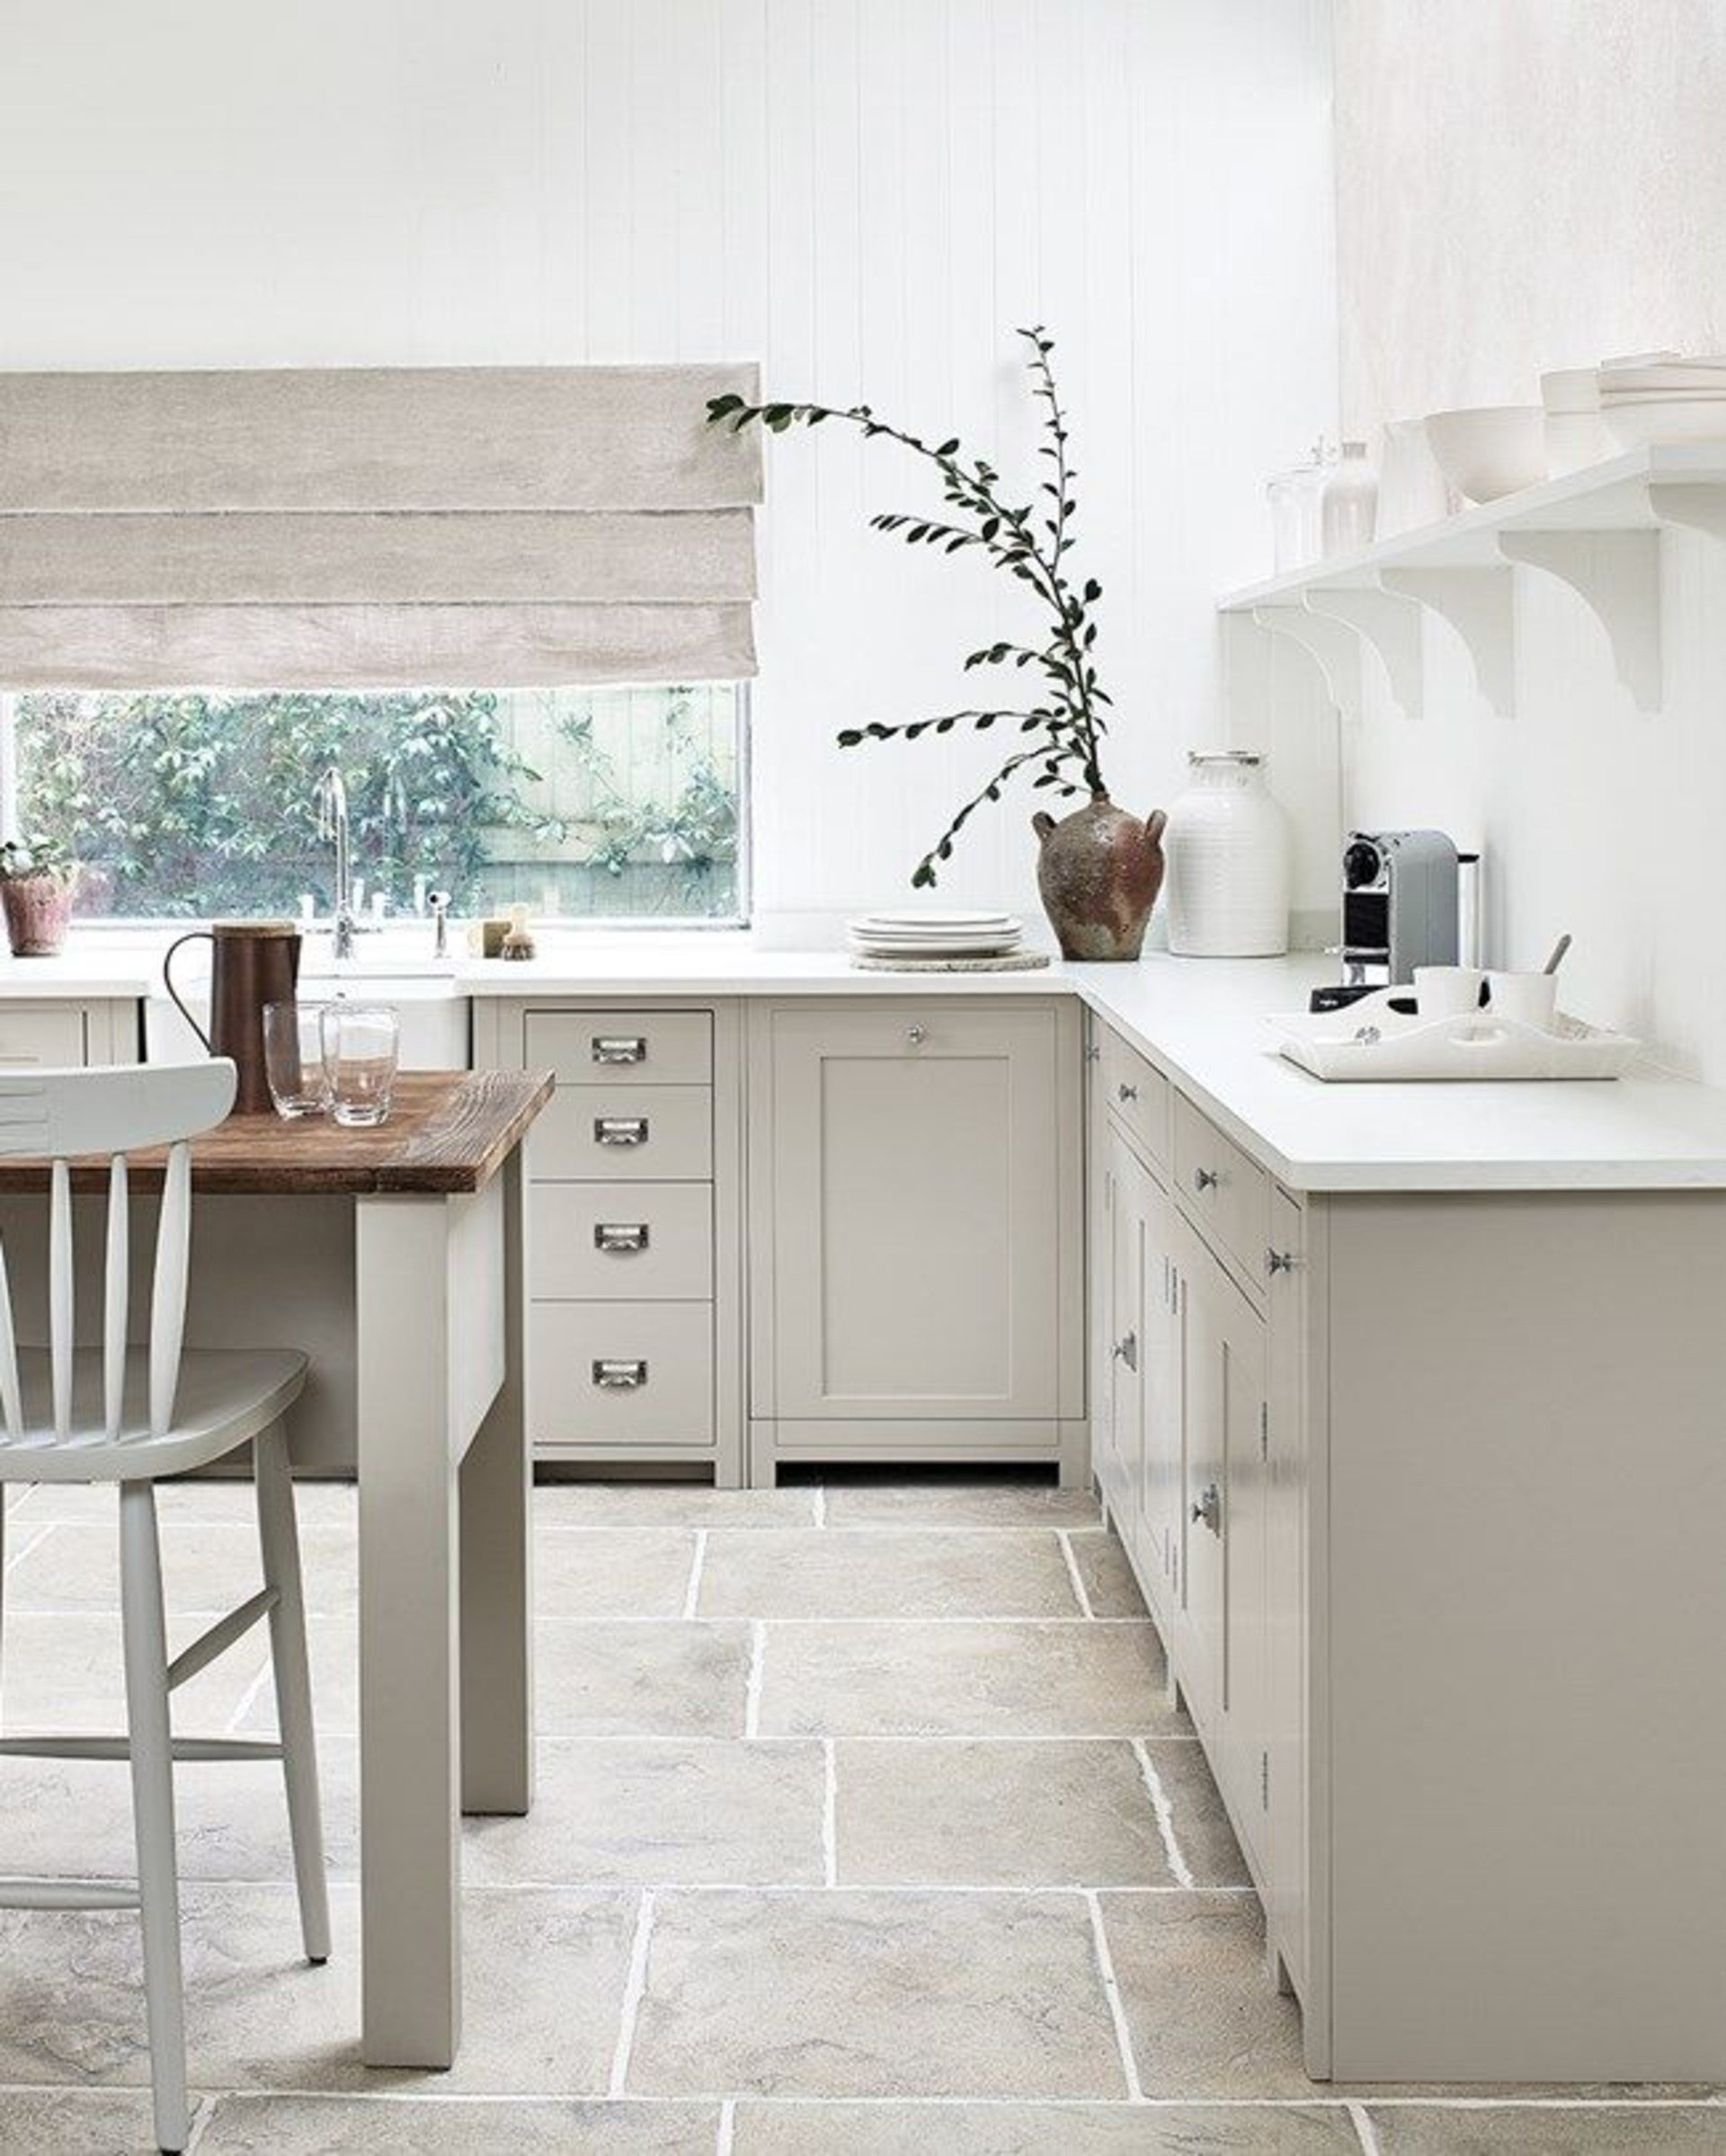 8 Easy Ways To Update Your Kitchen Cabinets - Bobby Berk